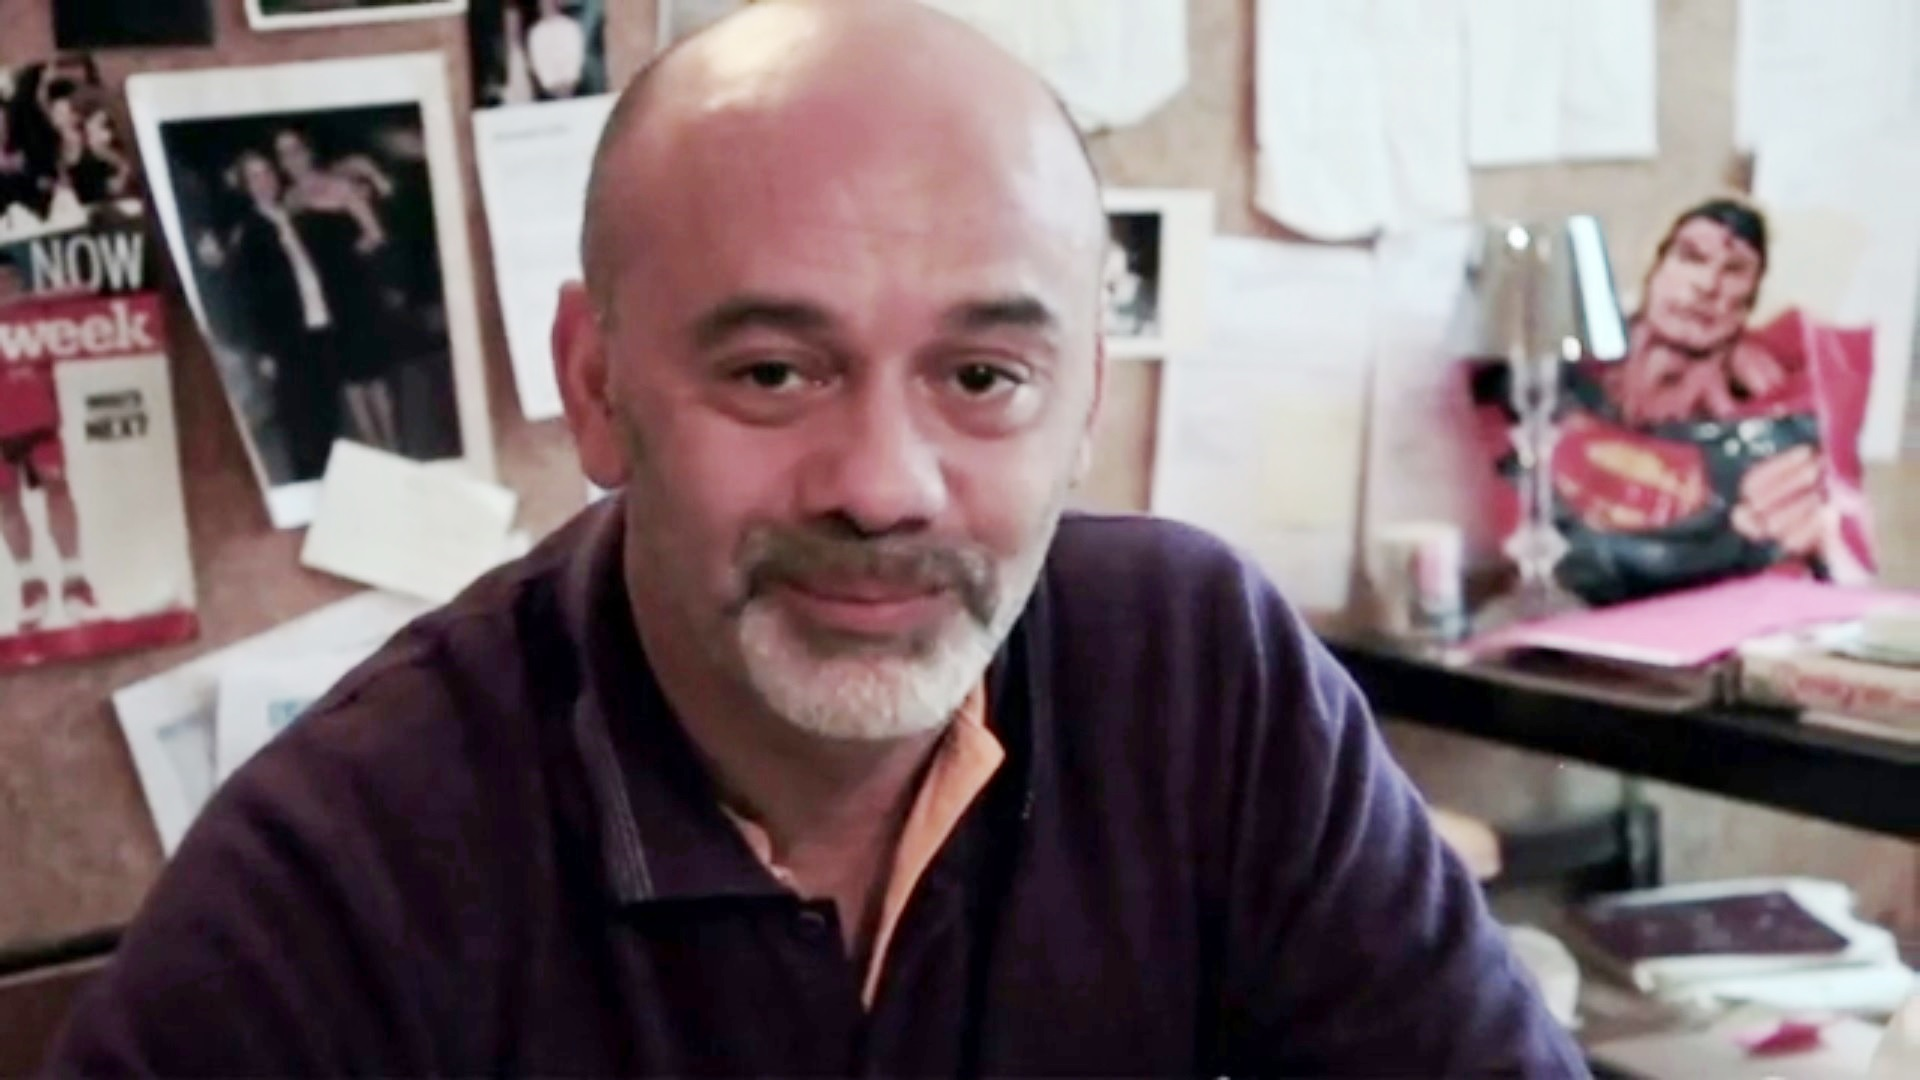 Christian Louboutin - Wikipedia, the free encyclopedia